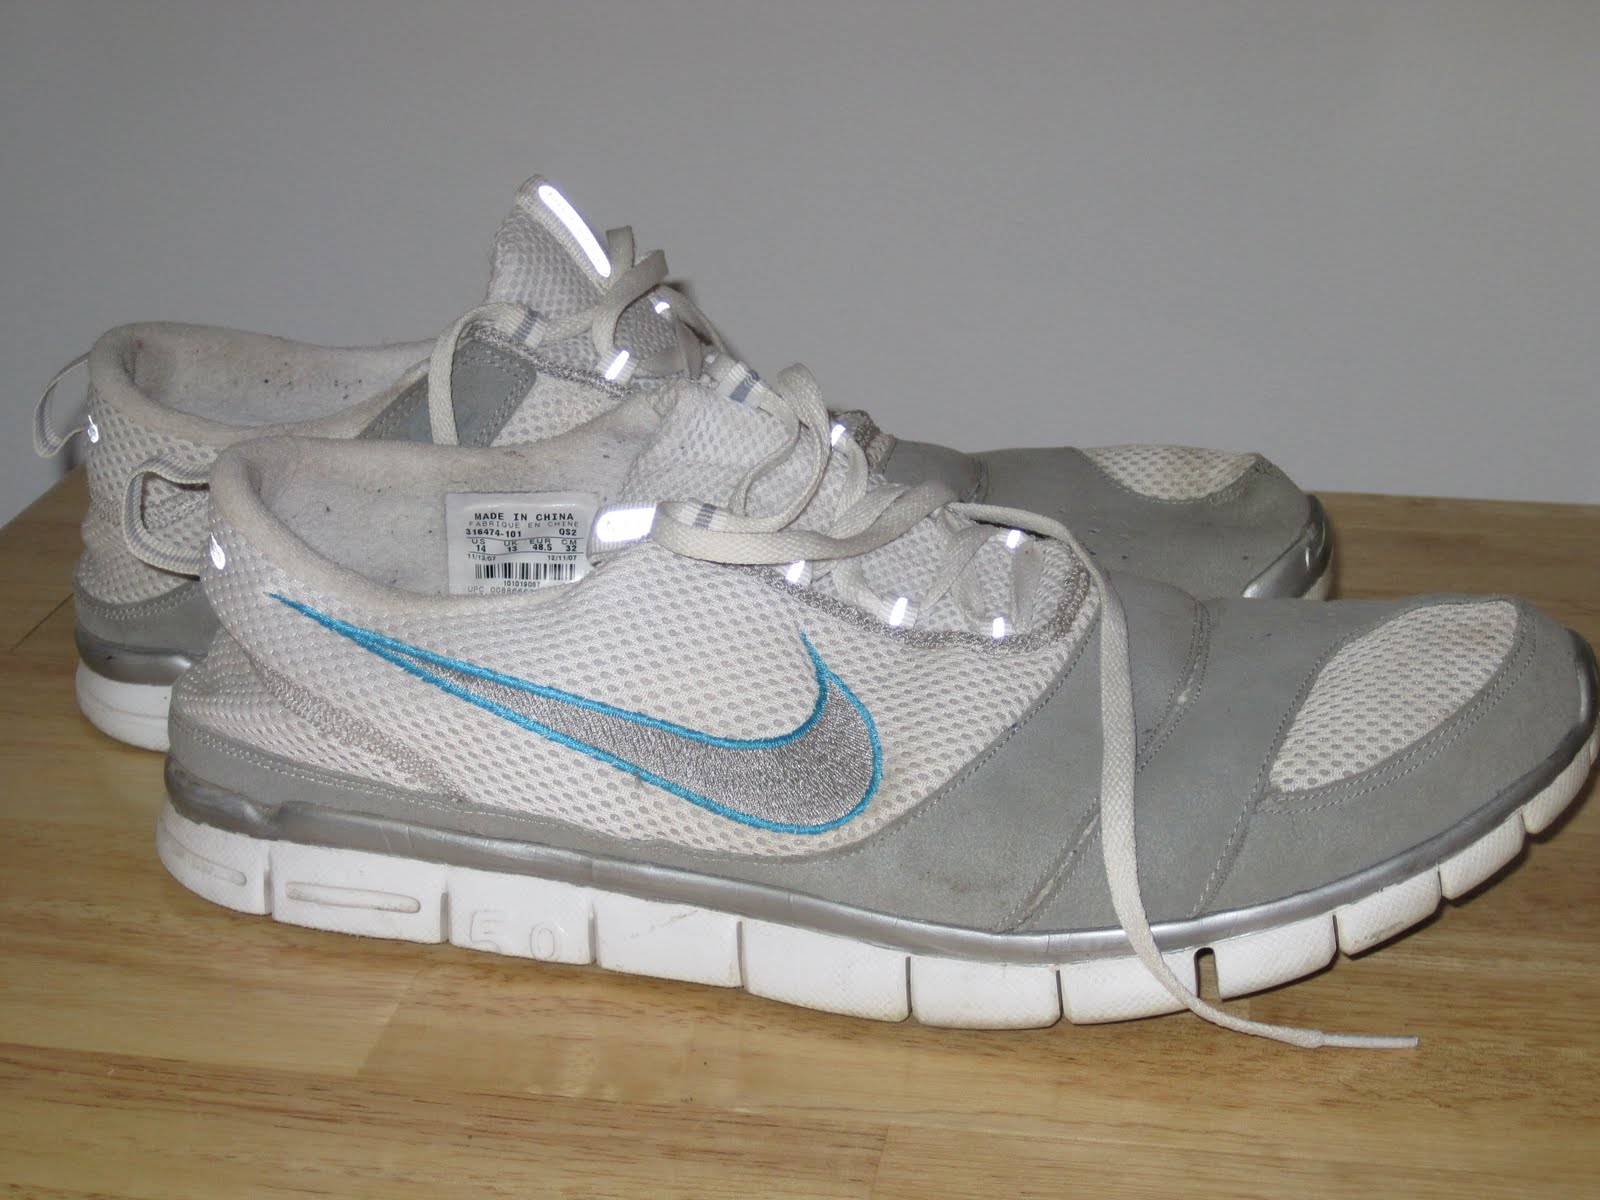 Chris' Ultra Blog: My Zero Drop Nike Free